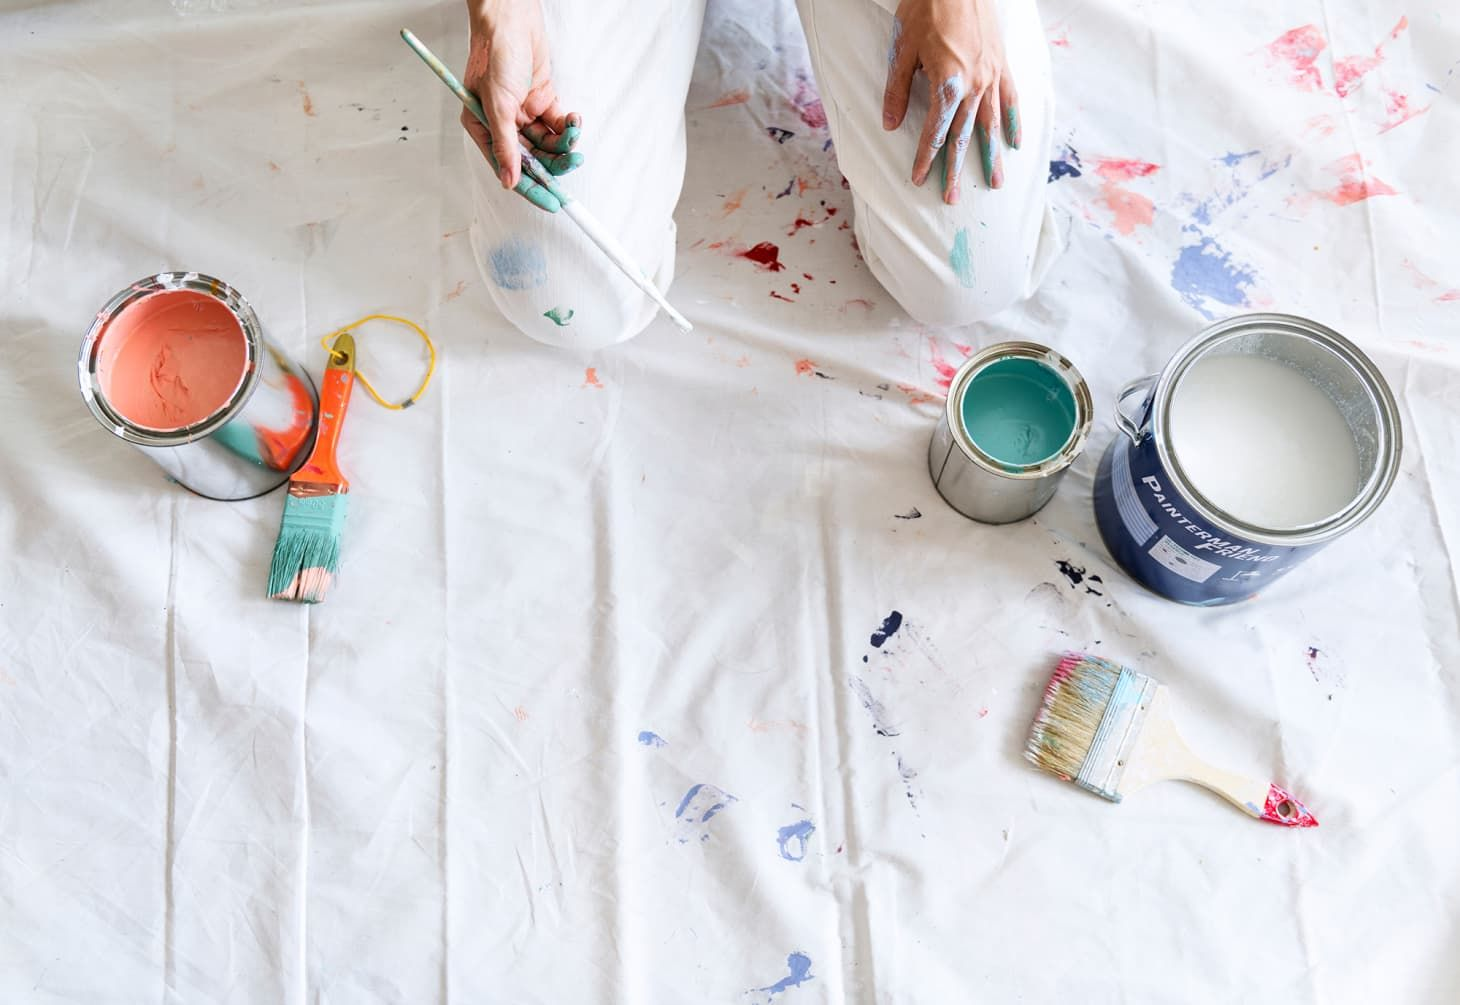 Tossing unused paint is more complicated than you think in